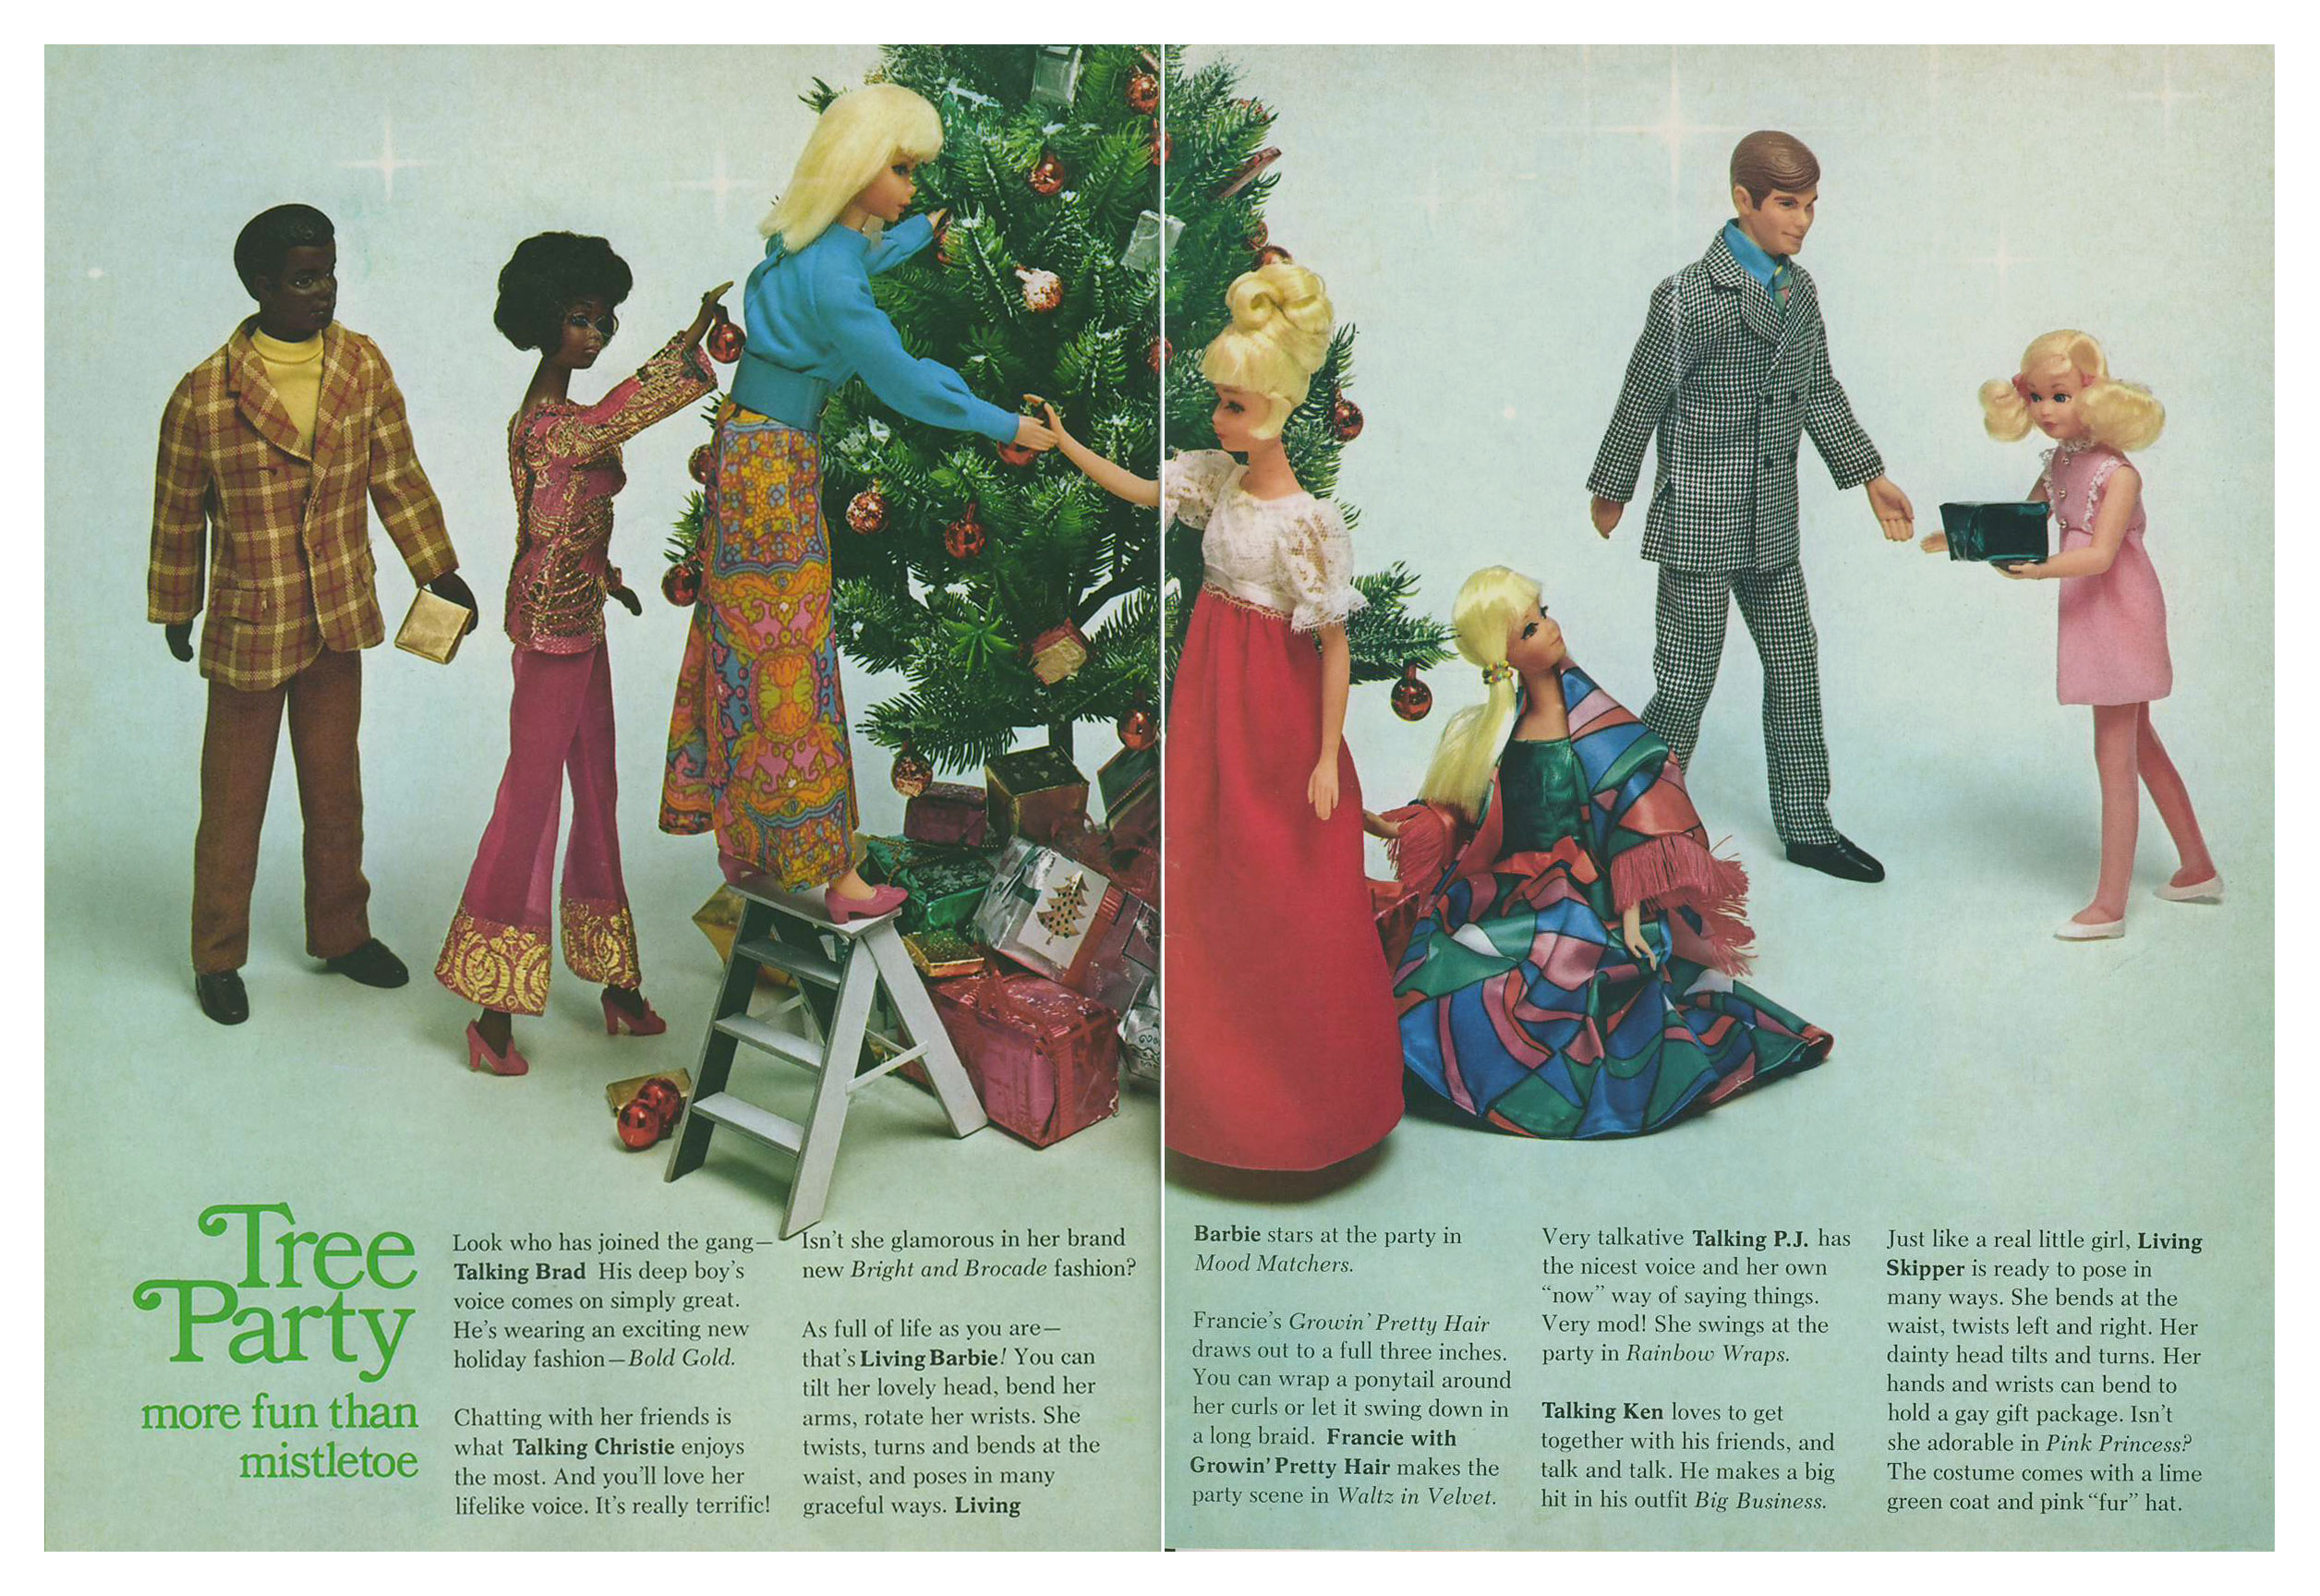 From 1970 Barbie Talk magazine